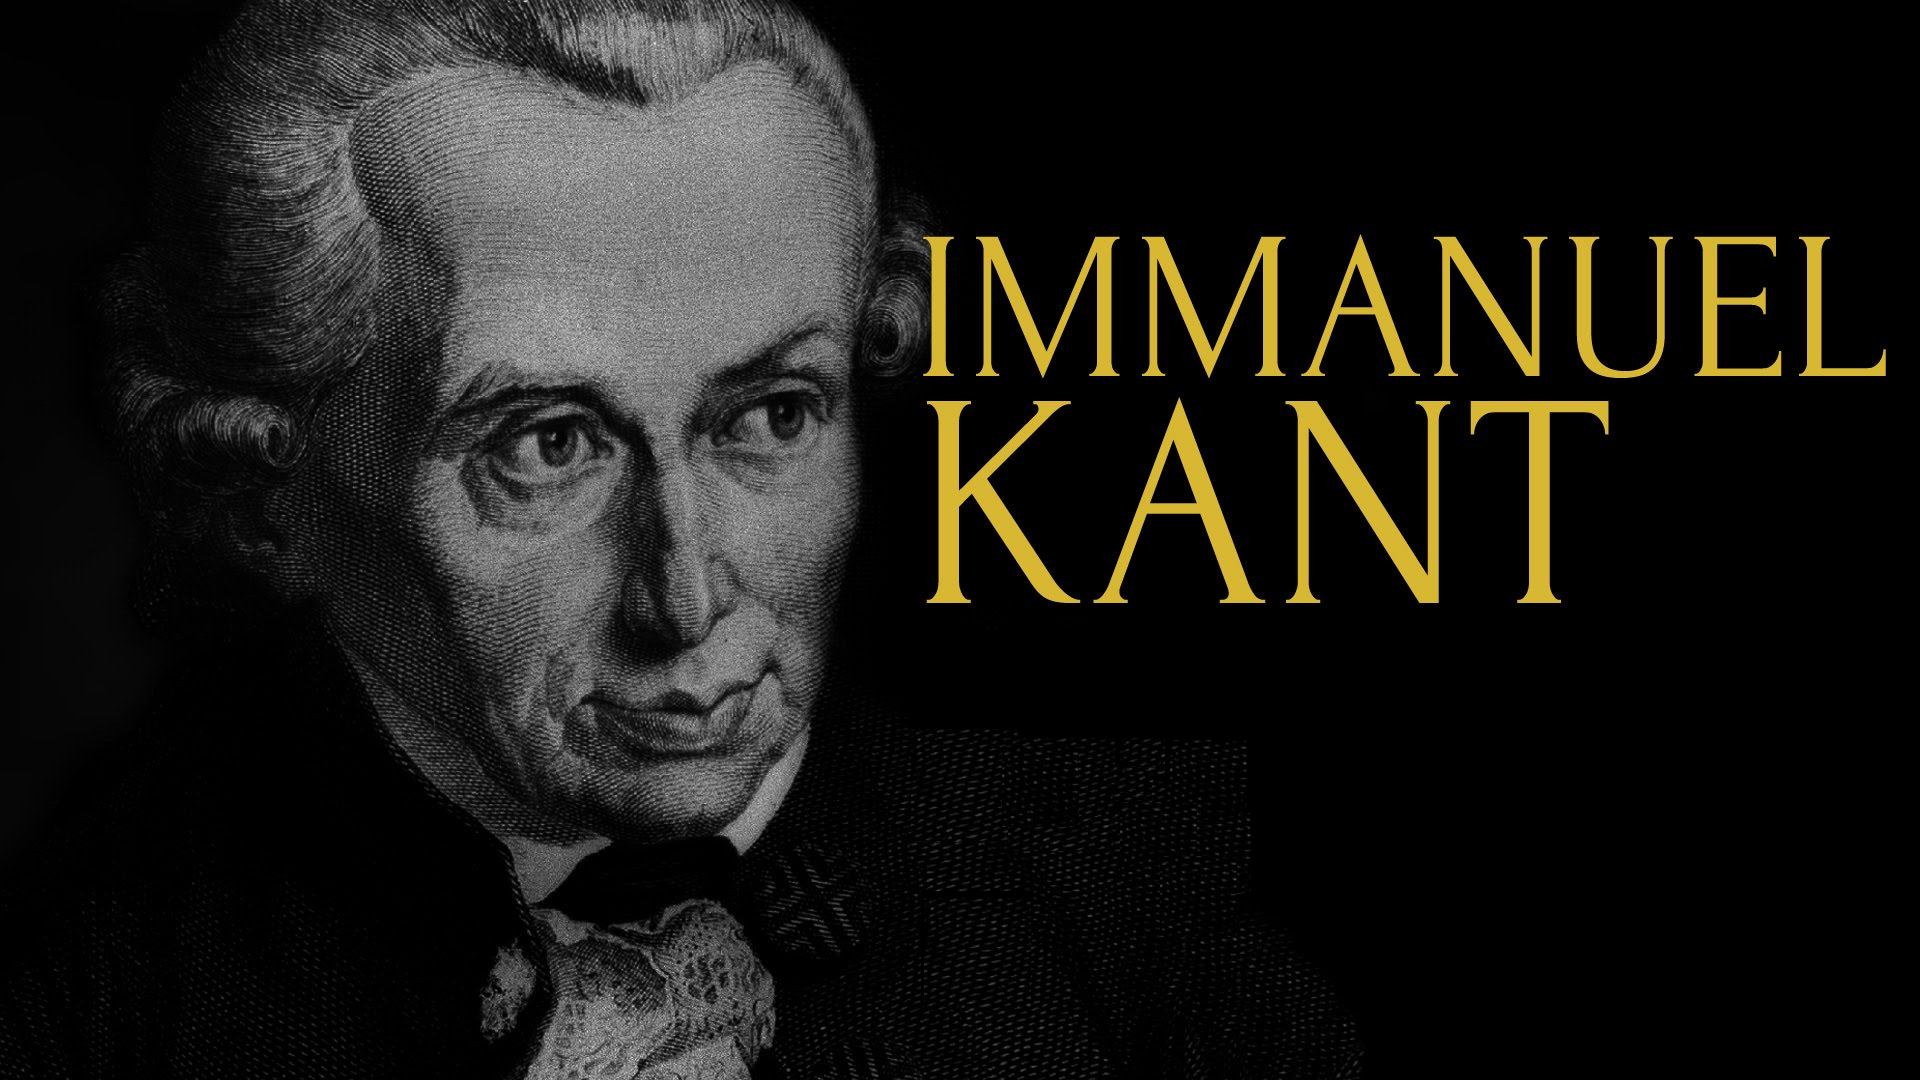 an analysis of goodness as proposed by immanuel kant Quotes by and about immanuel kant kant: among men there are but few who behave according to principles this is extremely good, as it can so easily happen that one errs in these principles, and then the resulting disadvantage extends all the further, the more universal the principle and the more.